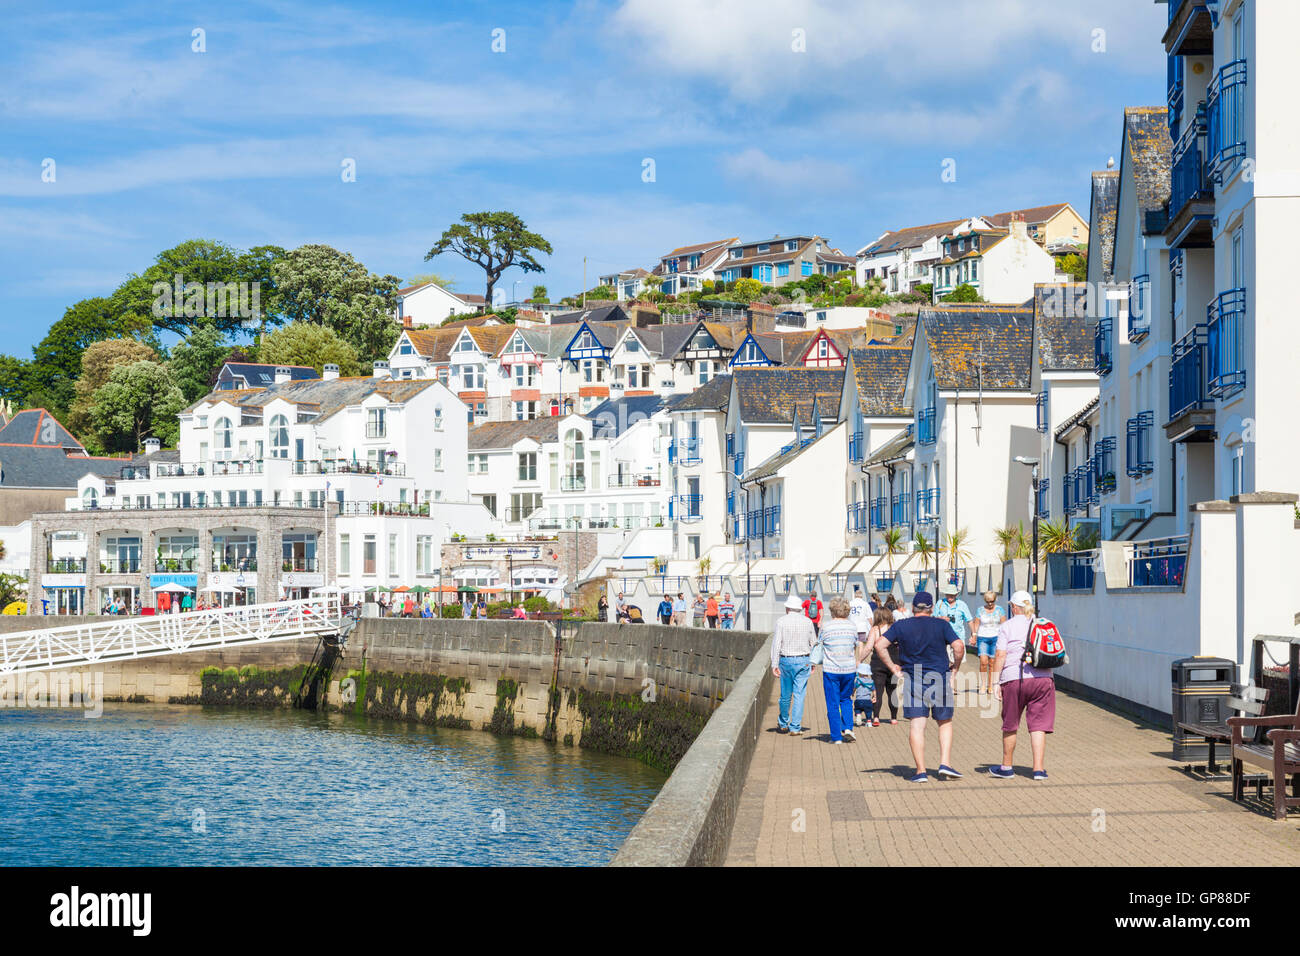 Holiday makers on Brixham Quay Brixham Devon England UK GB EU Europe - Stock Image